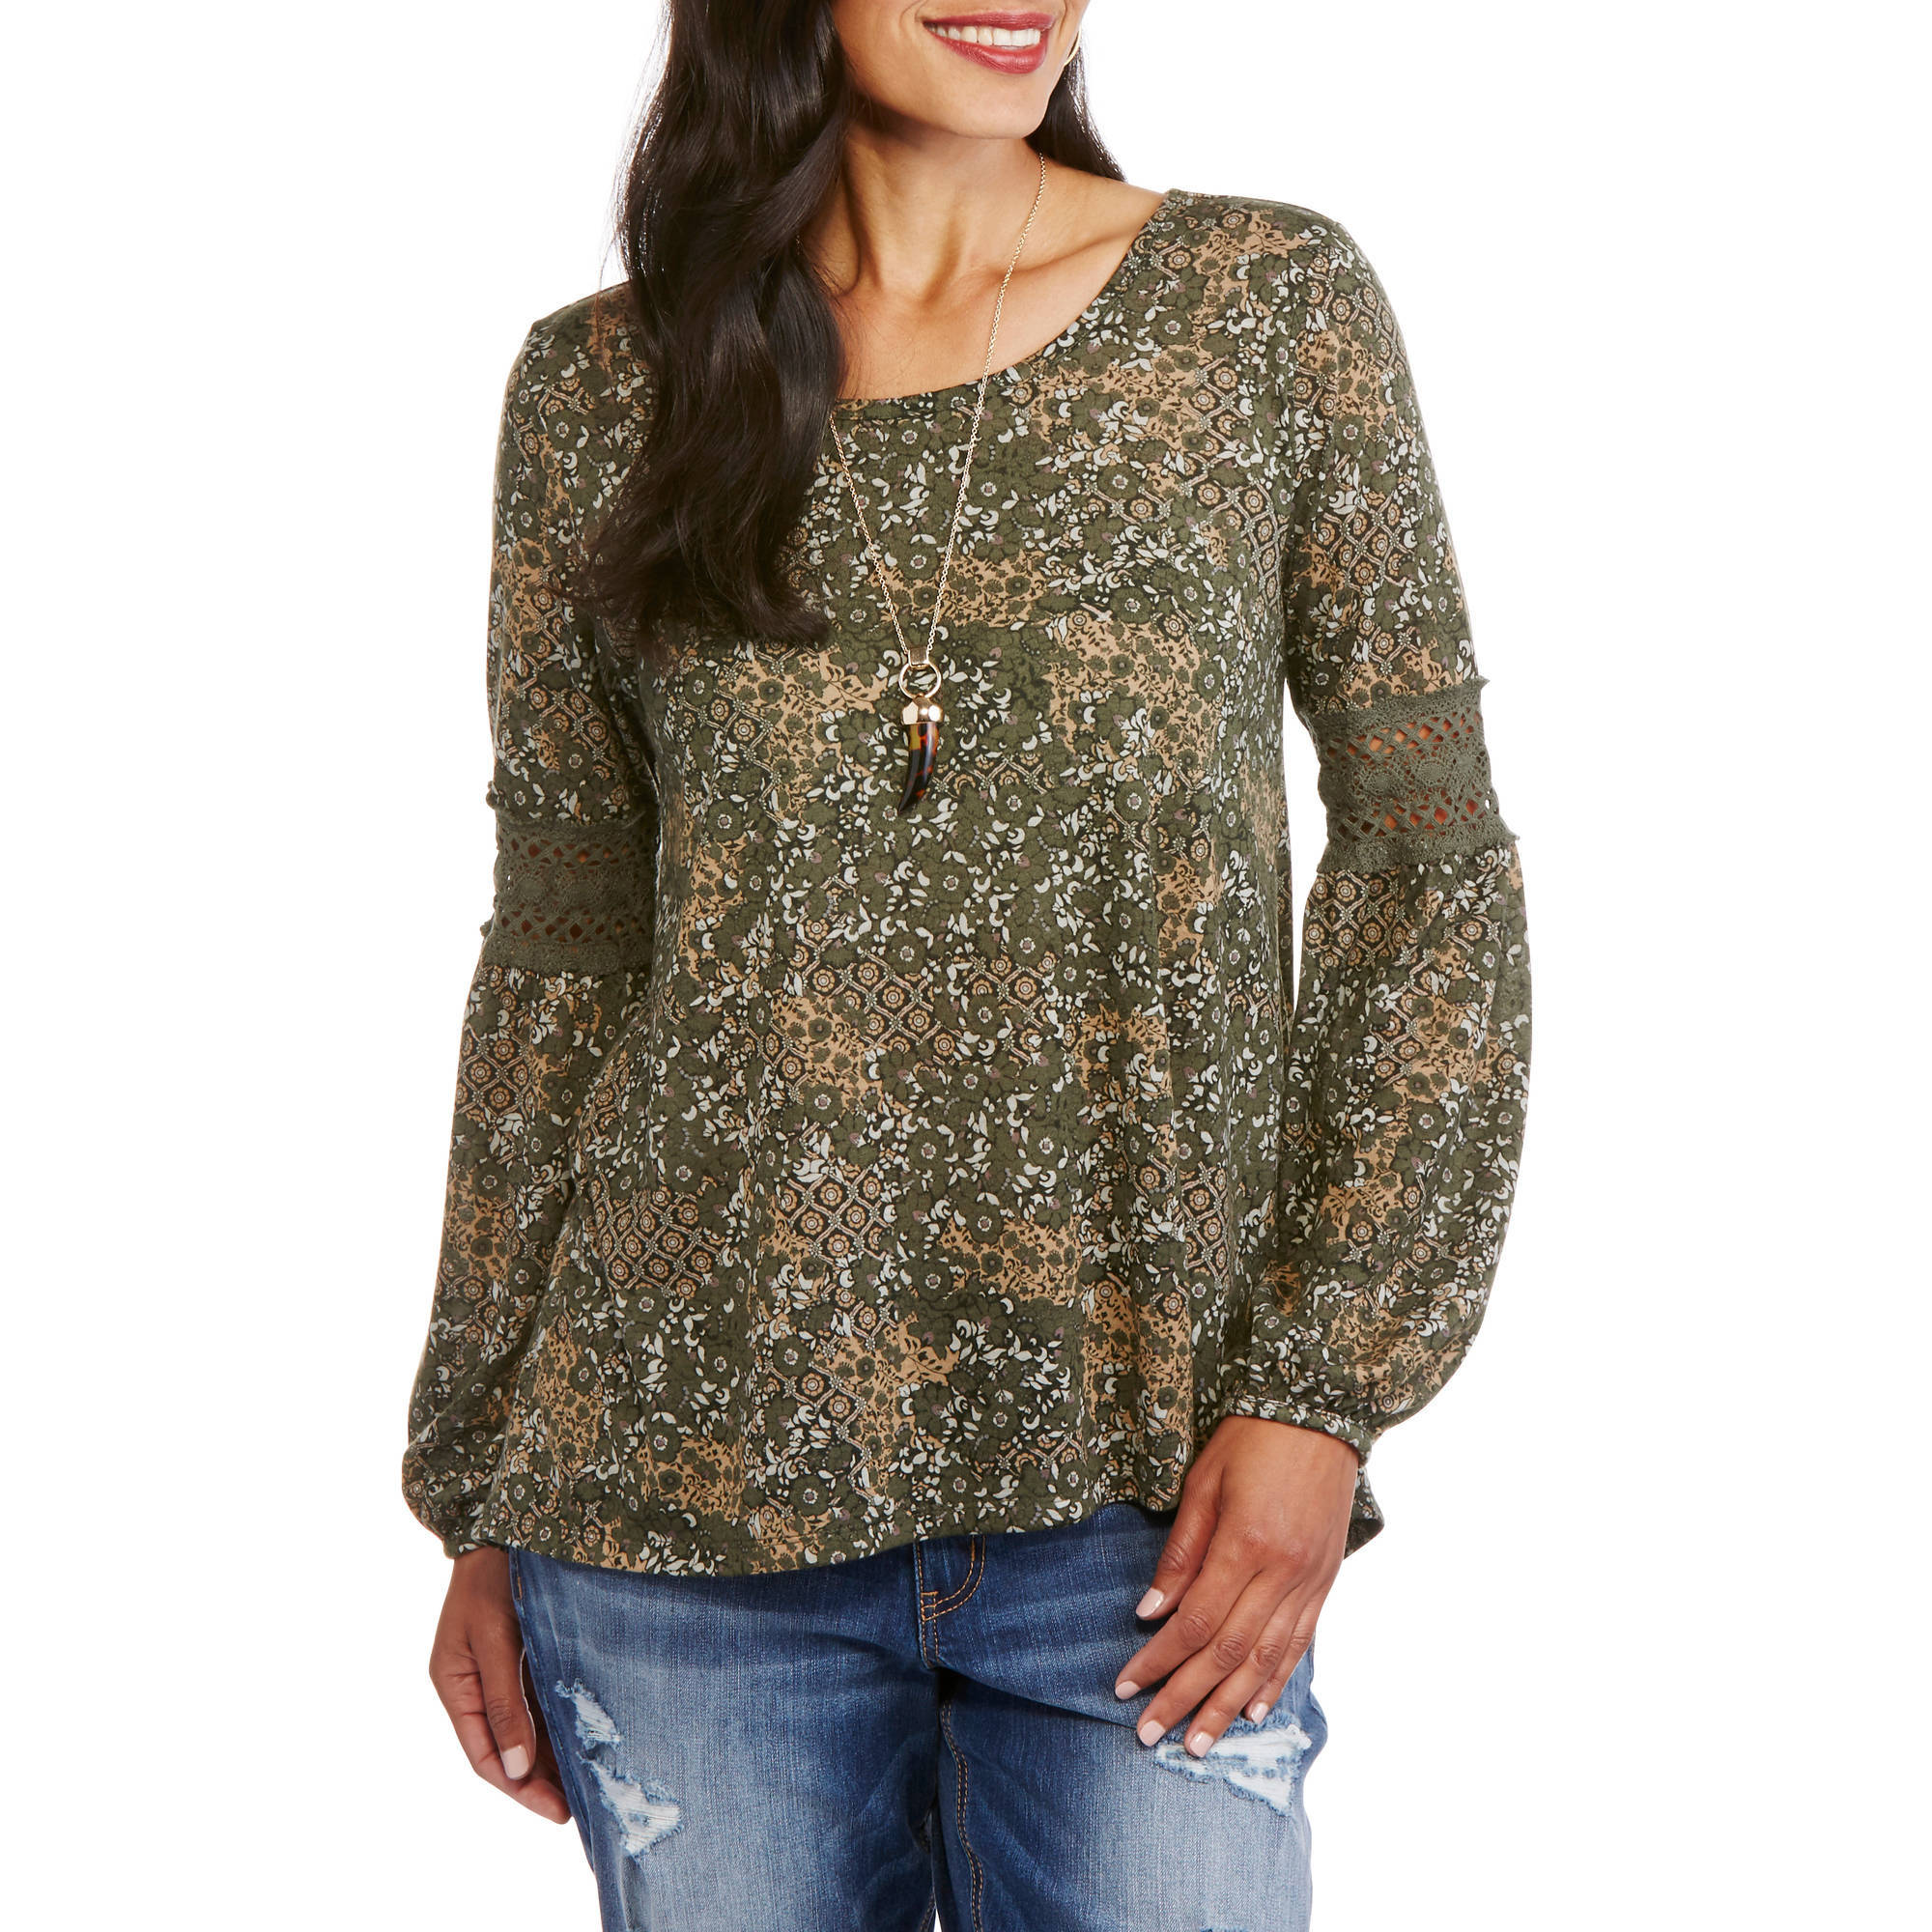 Faded Glory Women's Long Sleeve Peasant Top with Lace Detail Bell Sleeves